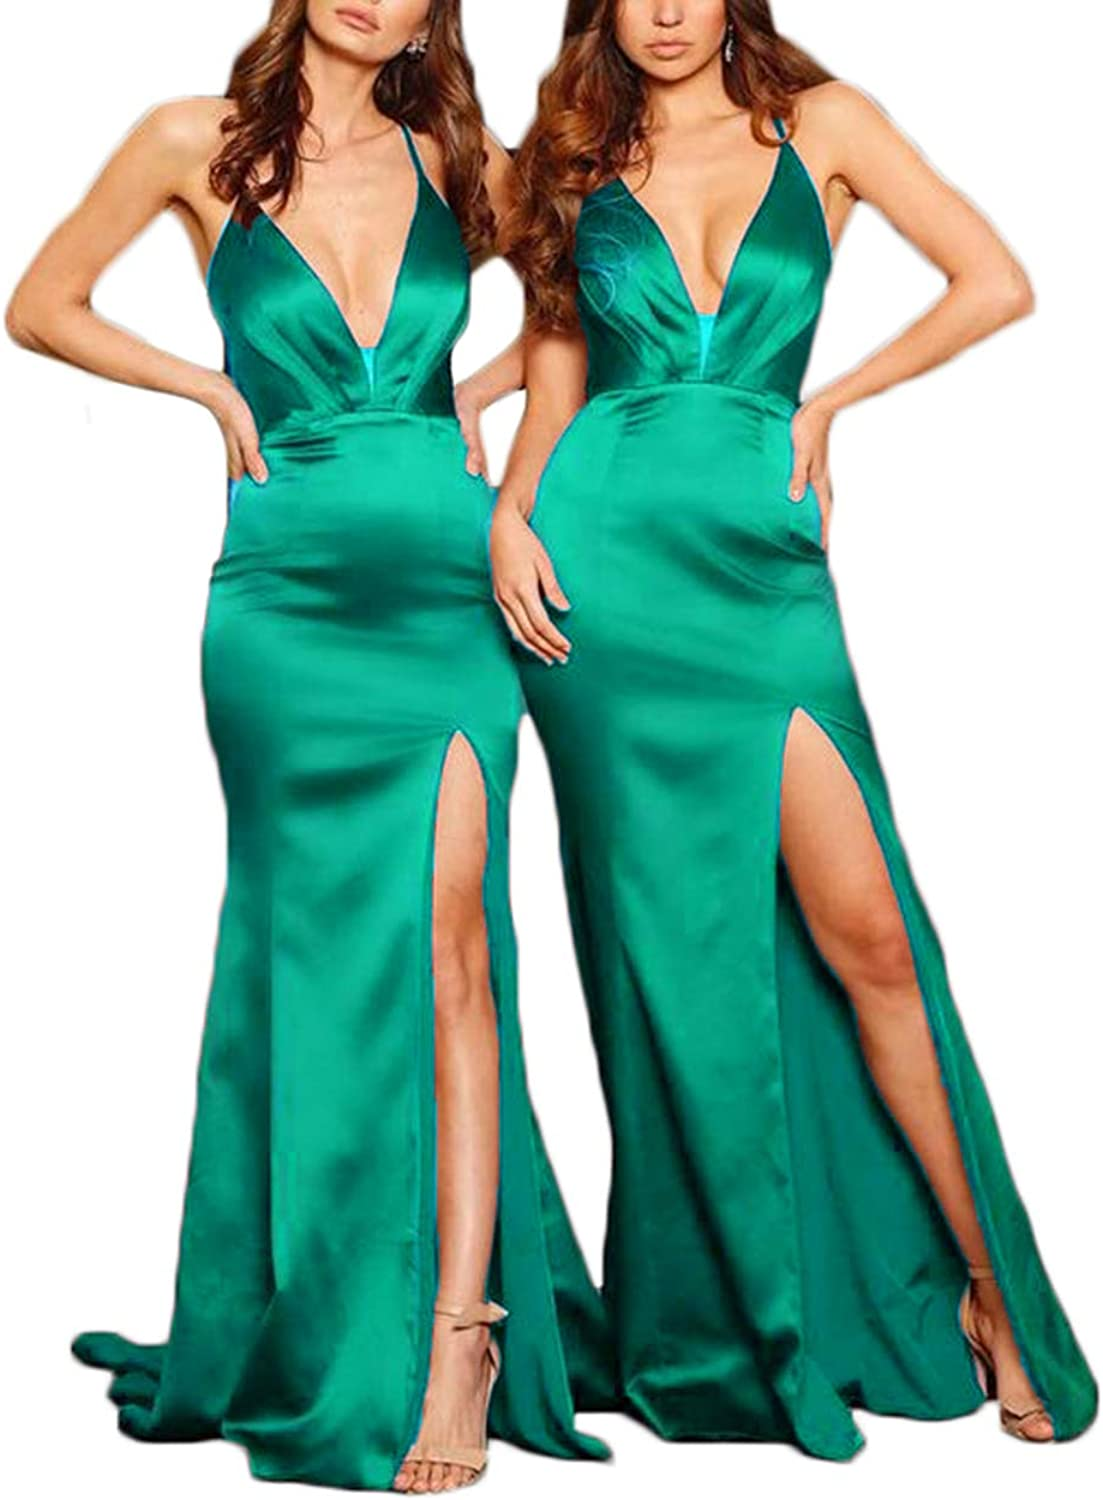 Alilith.Z Sexy Deep V Neck Mermaid Prom Evening Dresses 2019 Long Satin Bridesmaid Dresses Party Gowns for Women with Slit